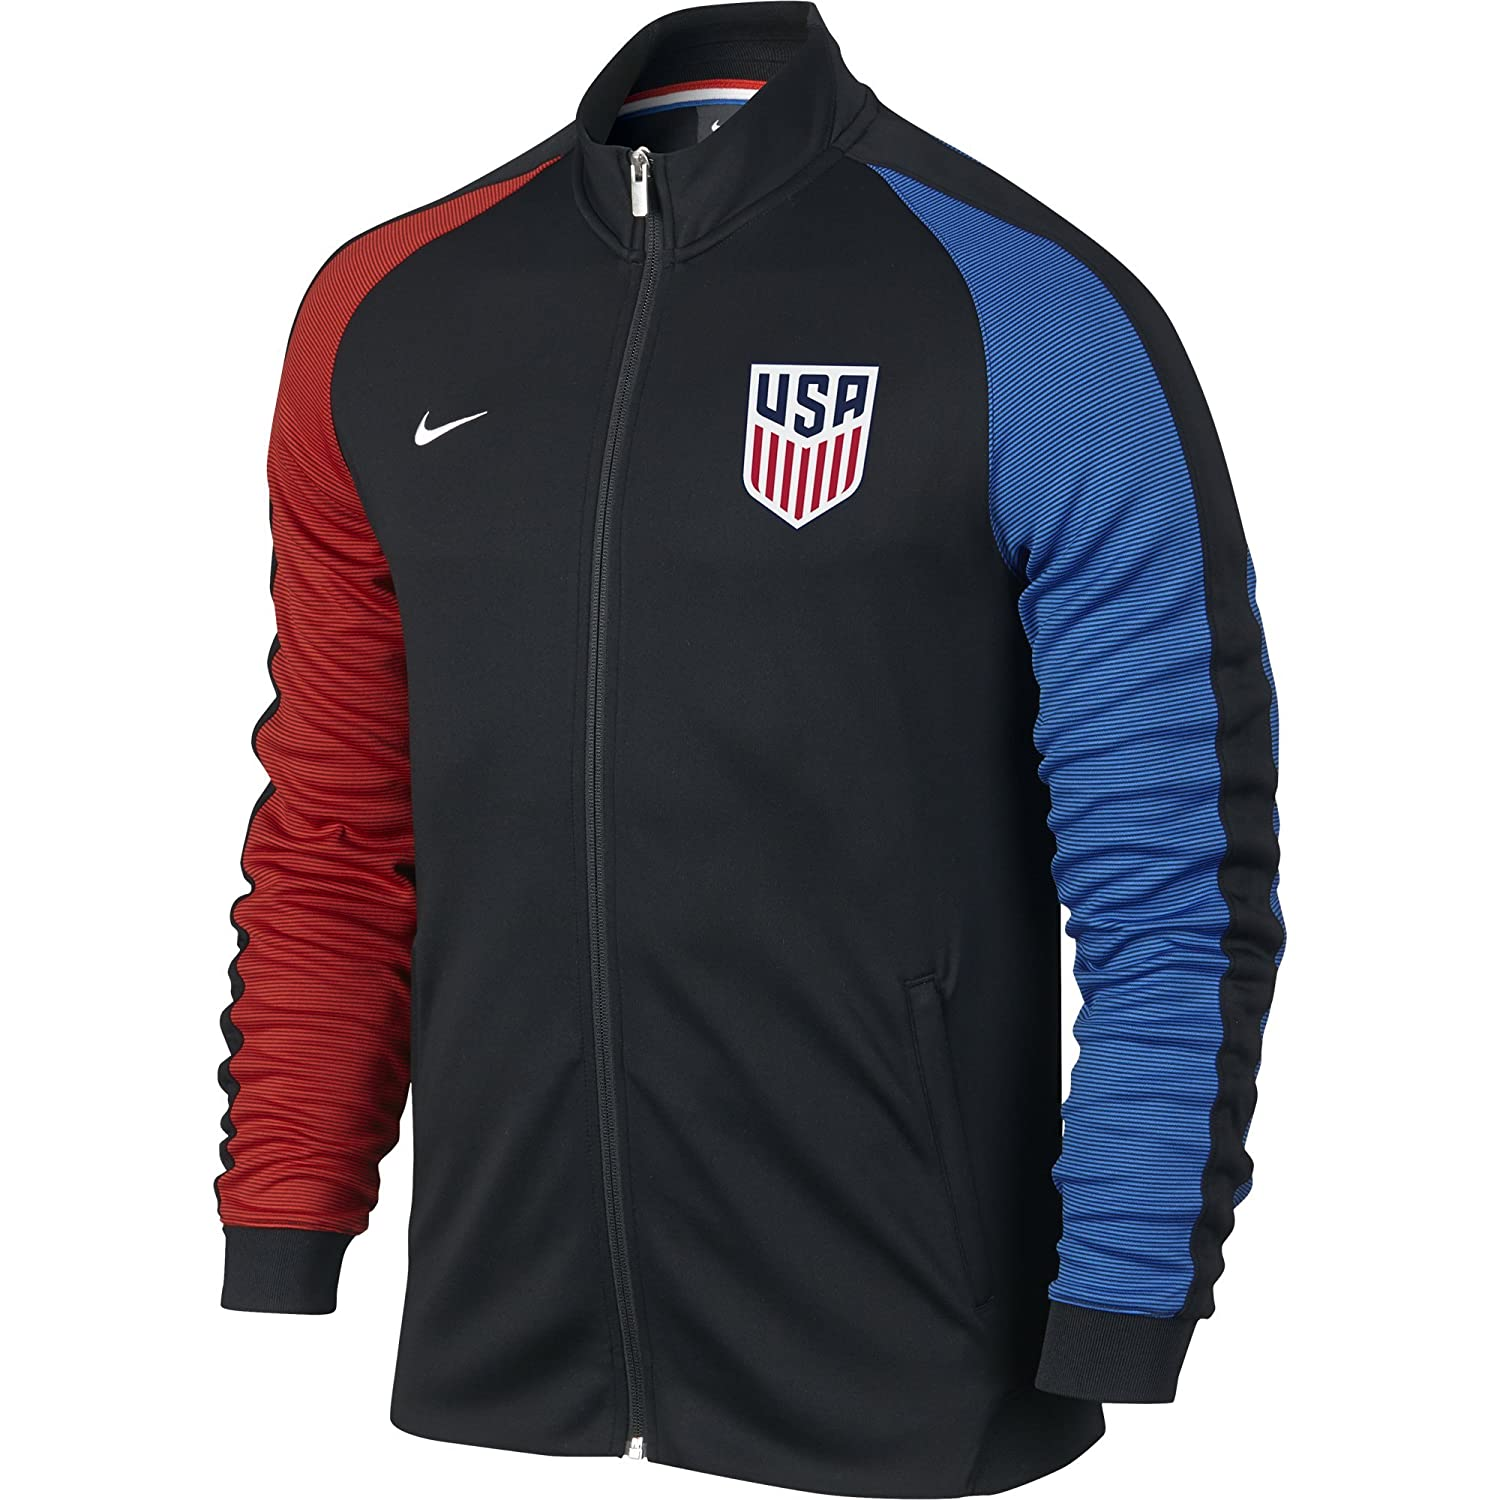 Top16  Nike U.S N98 Authentic Jacket Mens (Black) (XX-Large) 4036c3ee8